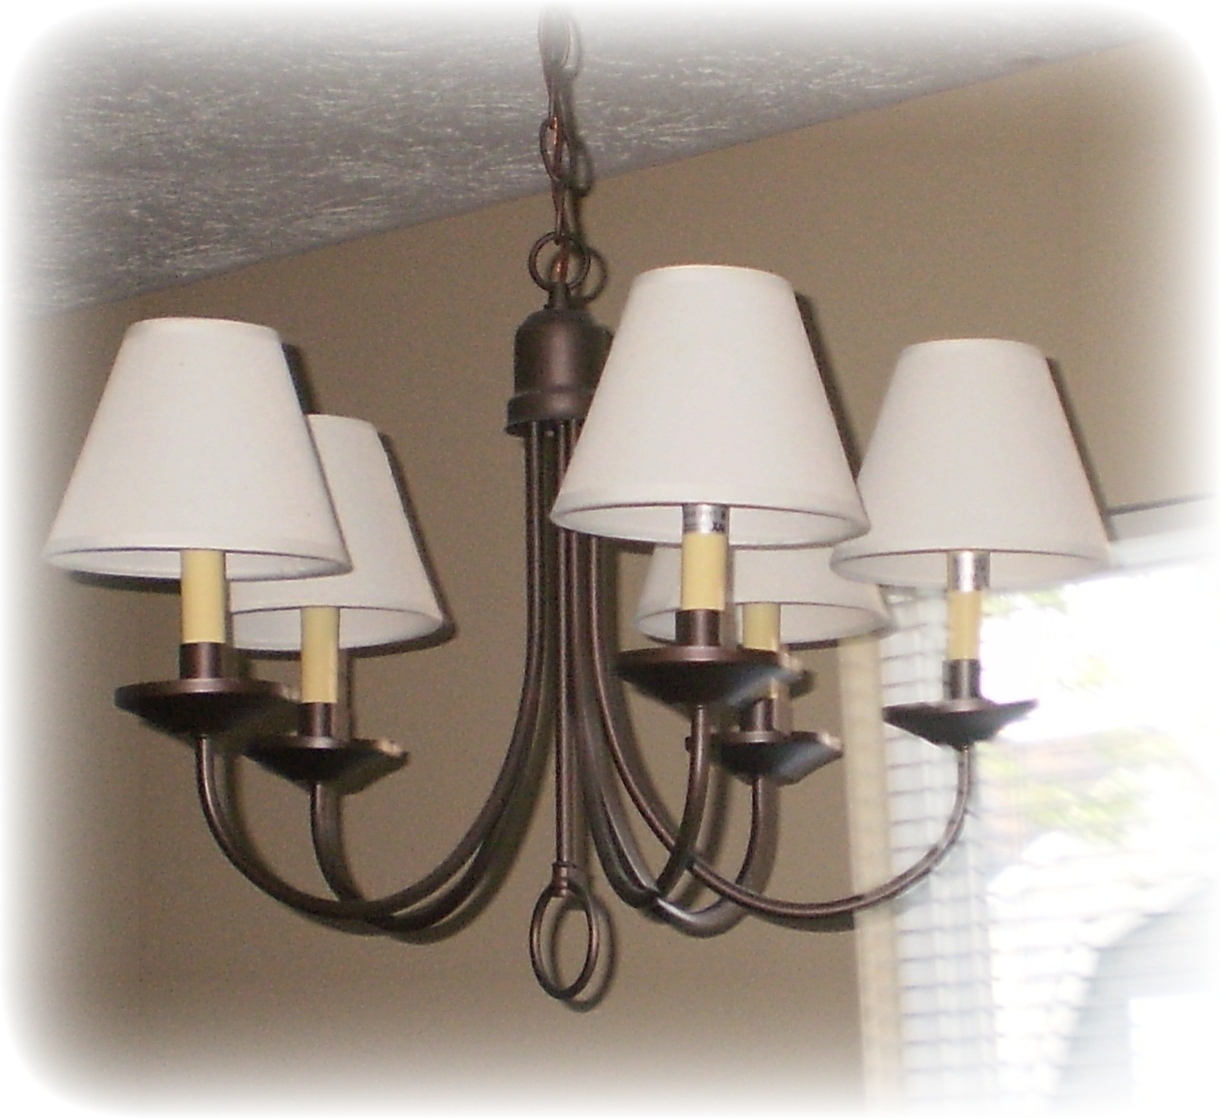 Chandelier Lamp Shades Regarding Fashionable Furniture : Mini Chandelier Shades Discount Fabulous 8 Mini (View 3 of 15)